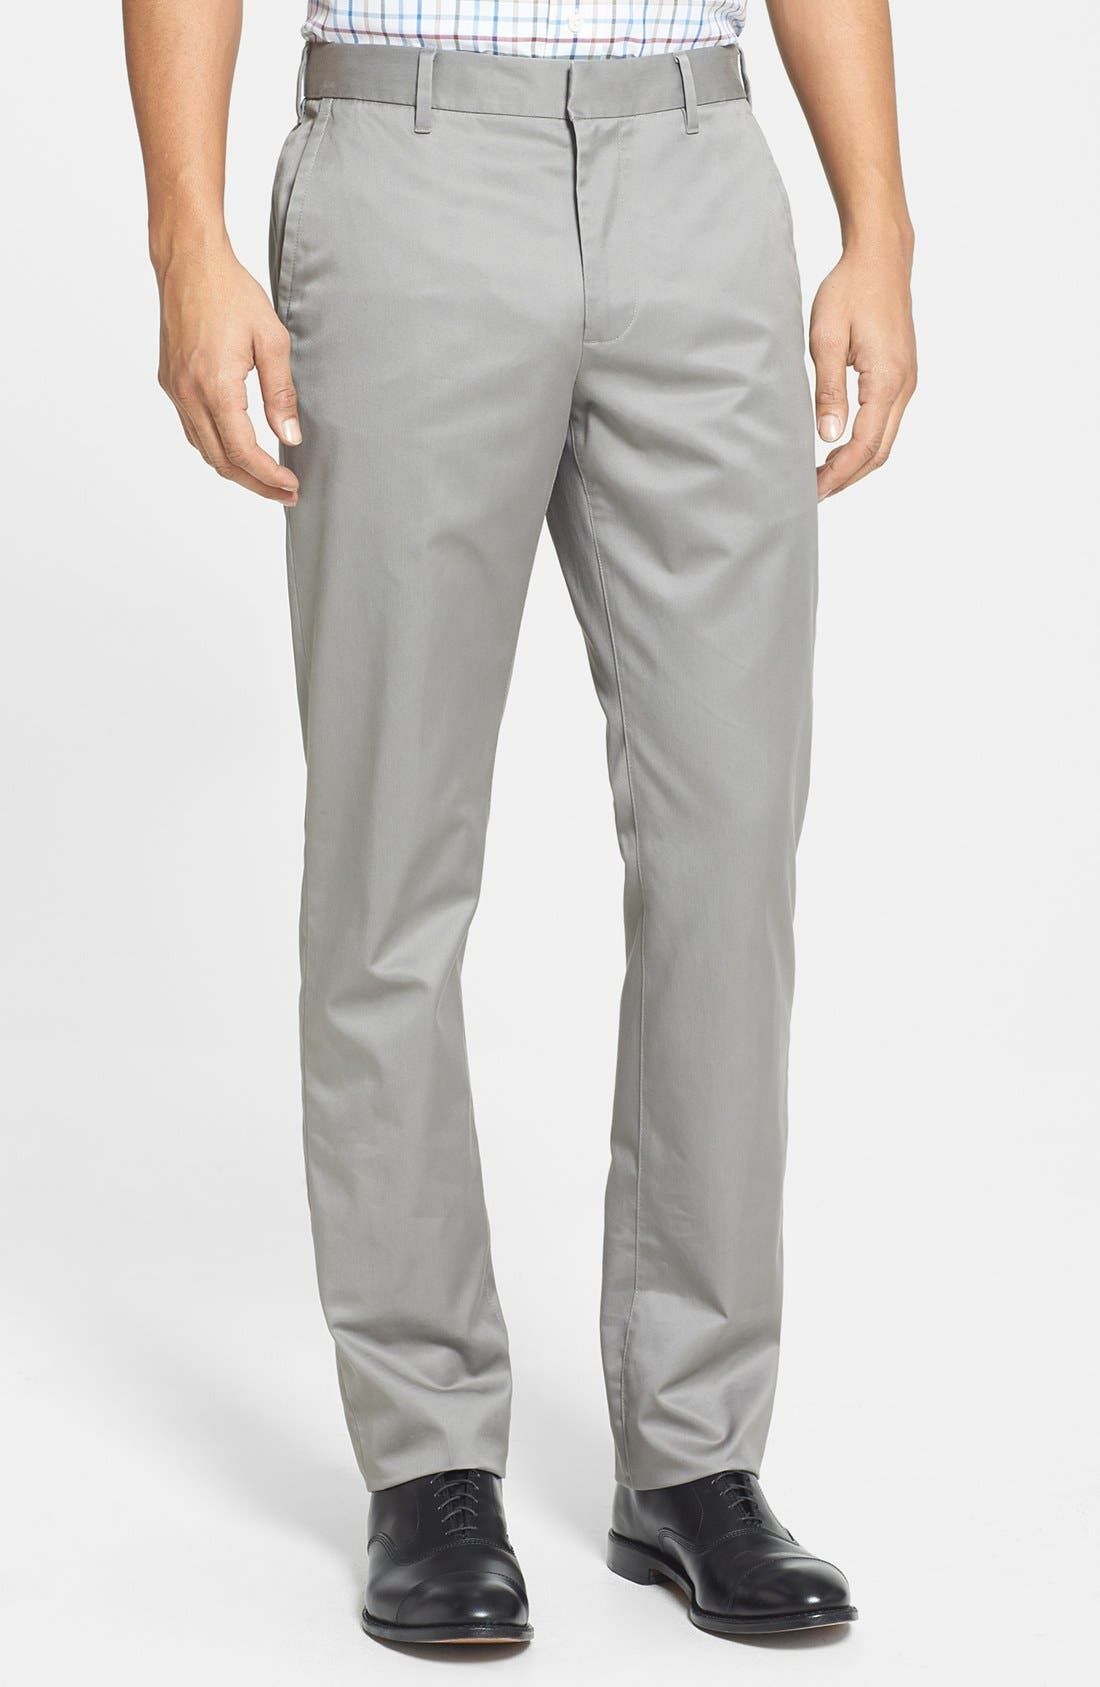 'Weekday Warriors' Non-Iron Slim Fit Cotton Chinos,                         Main,                         color, Friday Light Greys